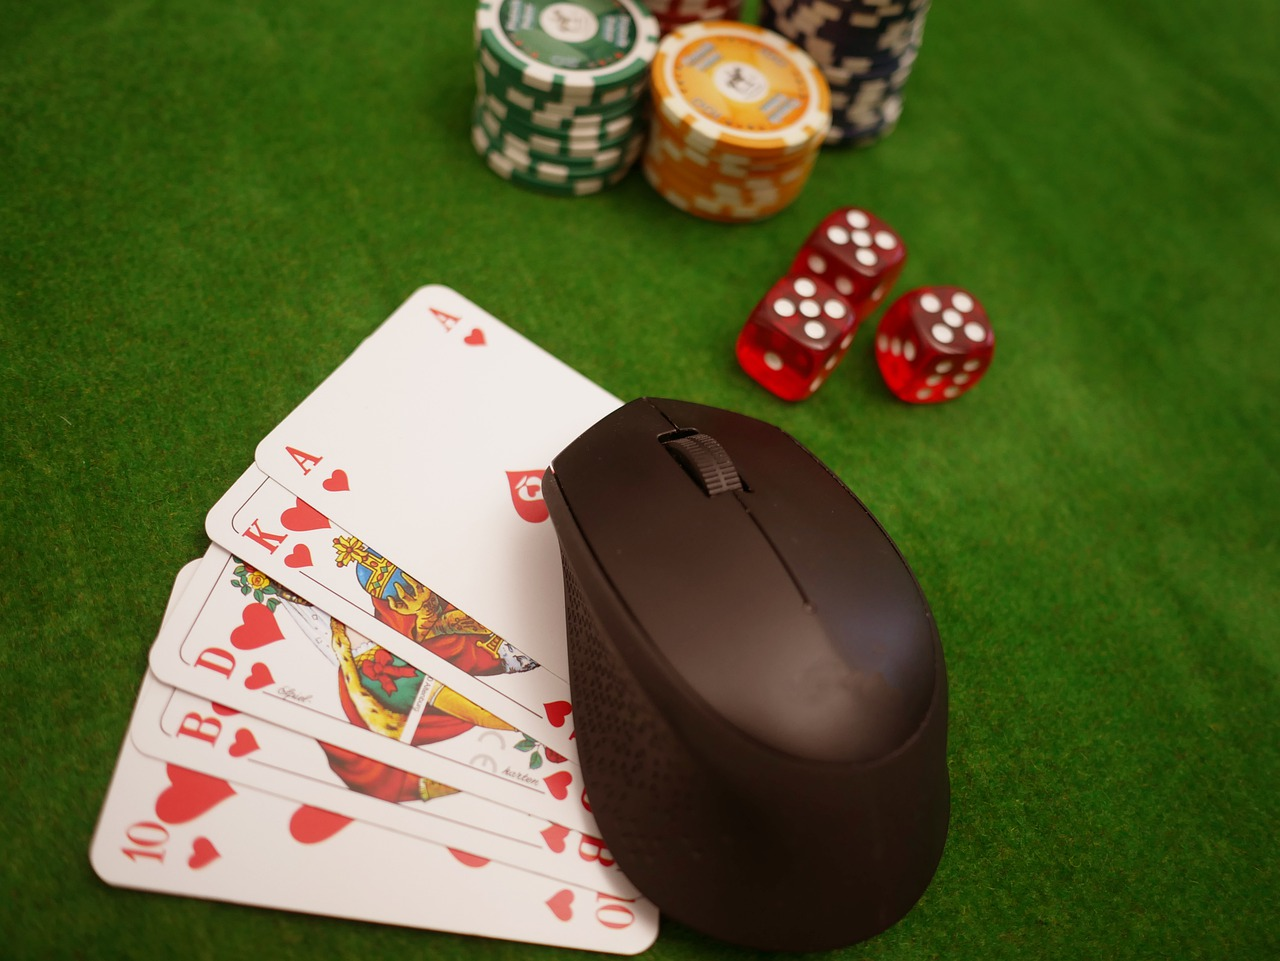 Just How To Cheat While Playing Cards?